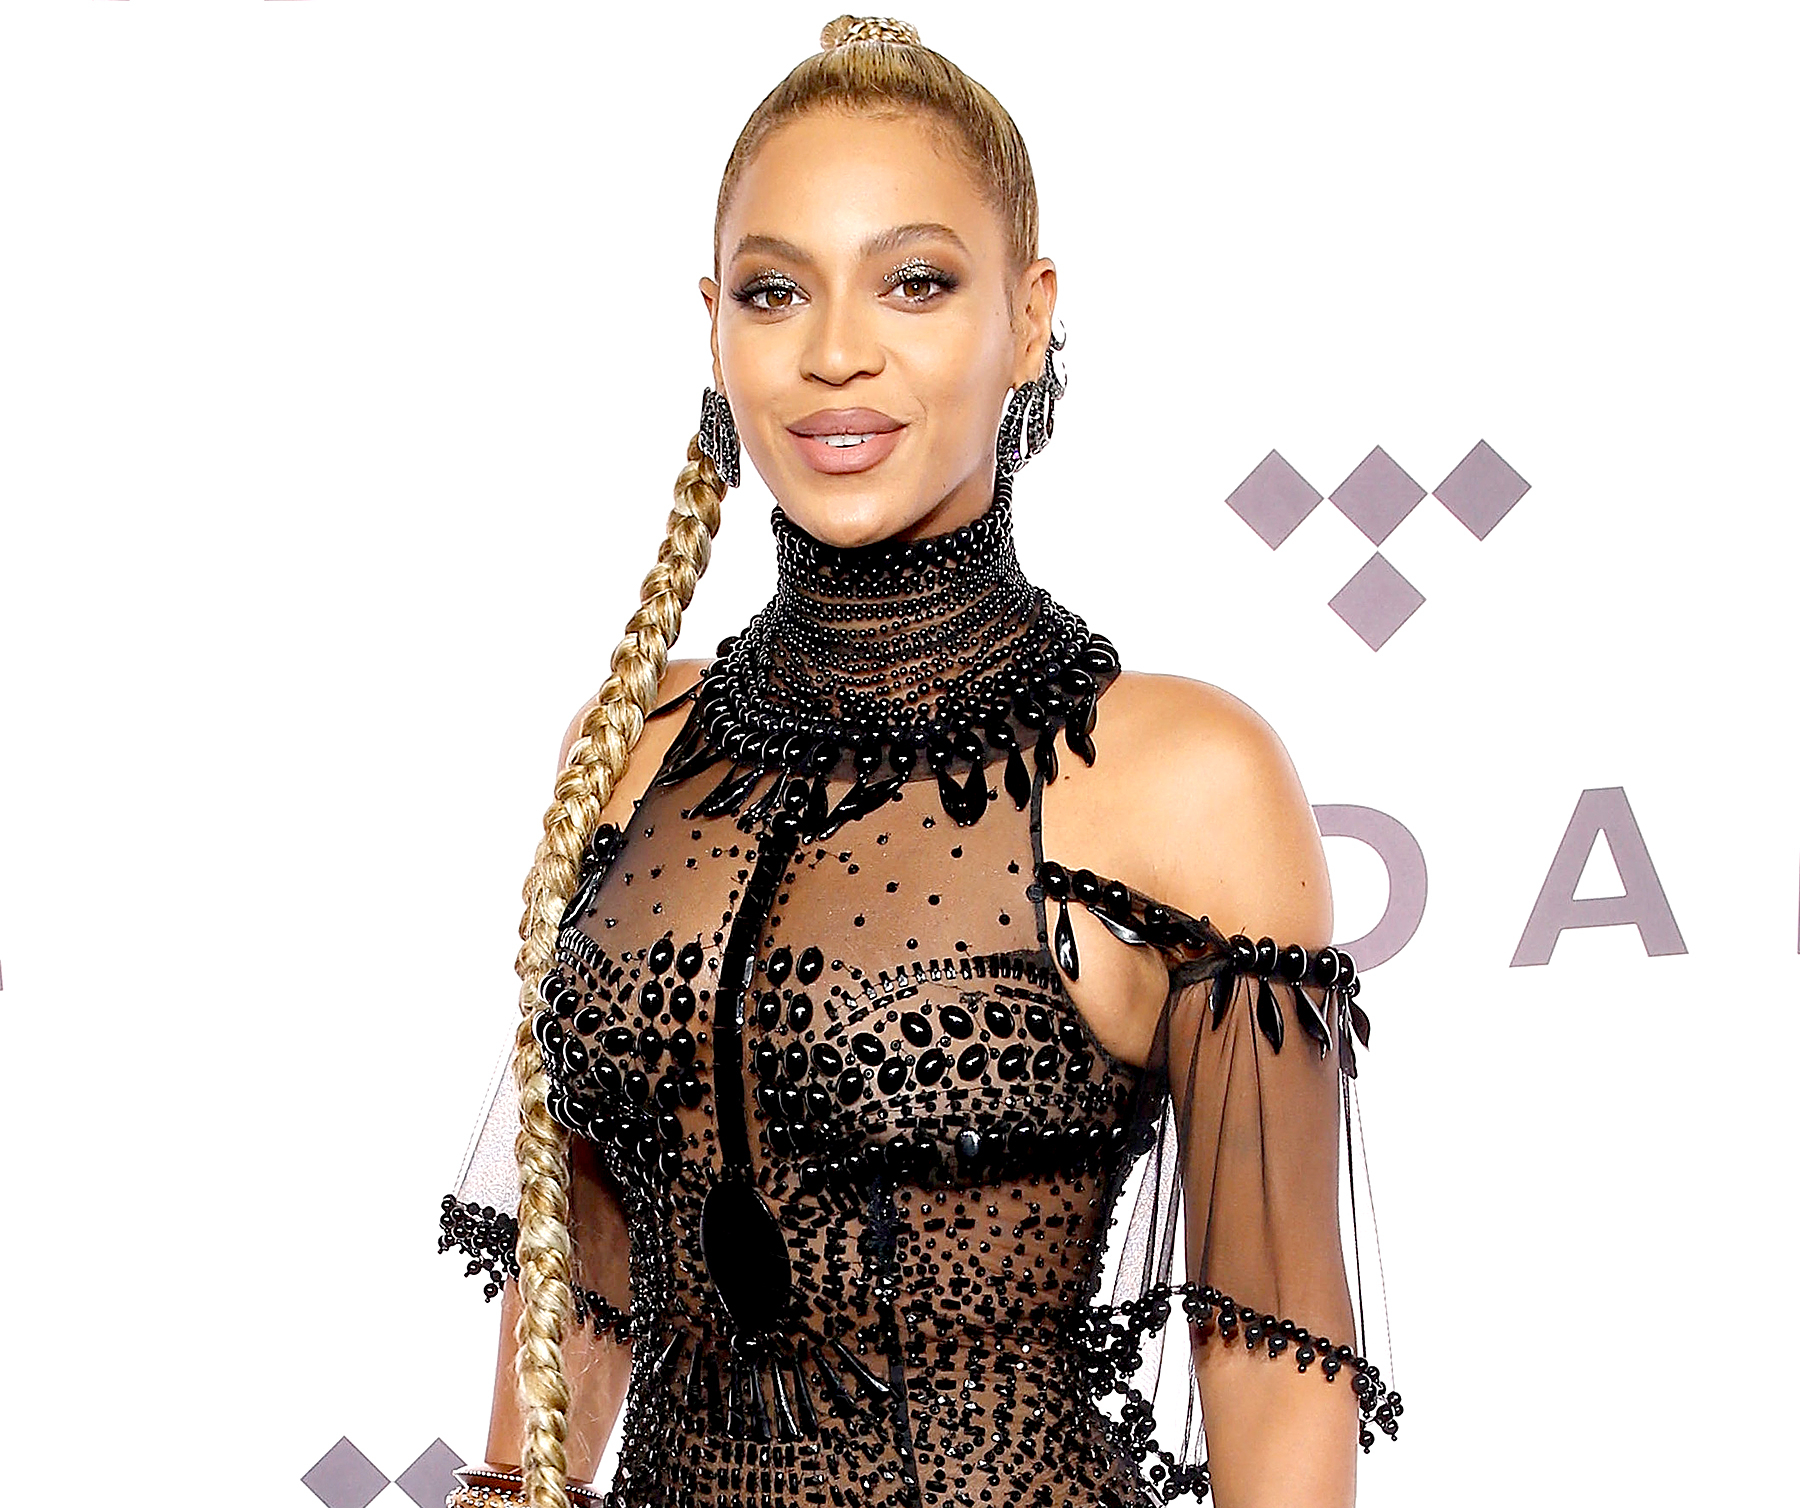 Beyonce attends TIDAL X: 1015 at Barclays Center on October 15, 2016 in New York City.